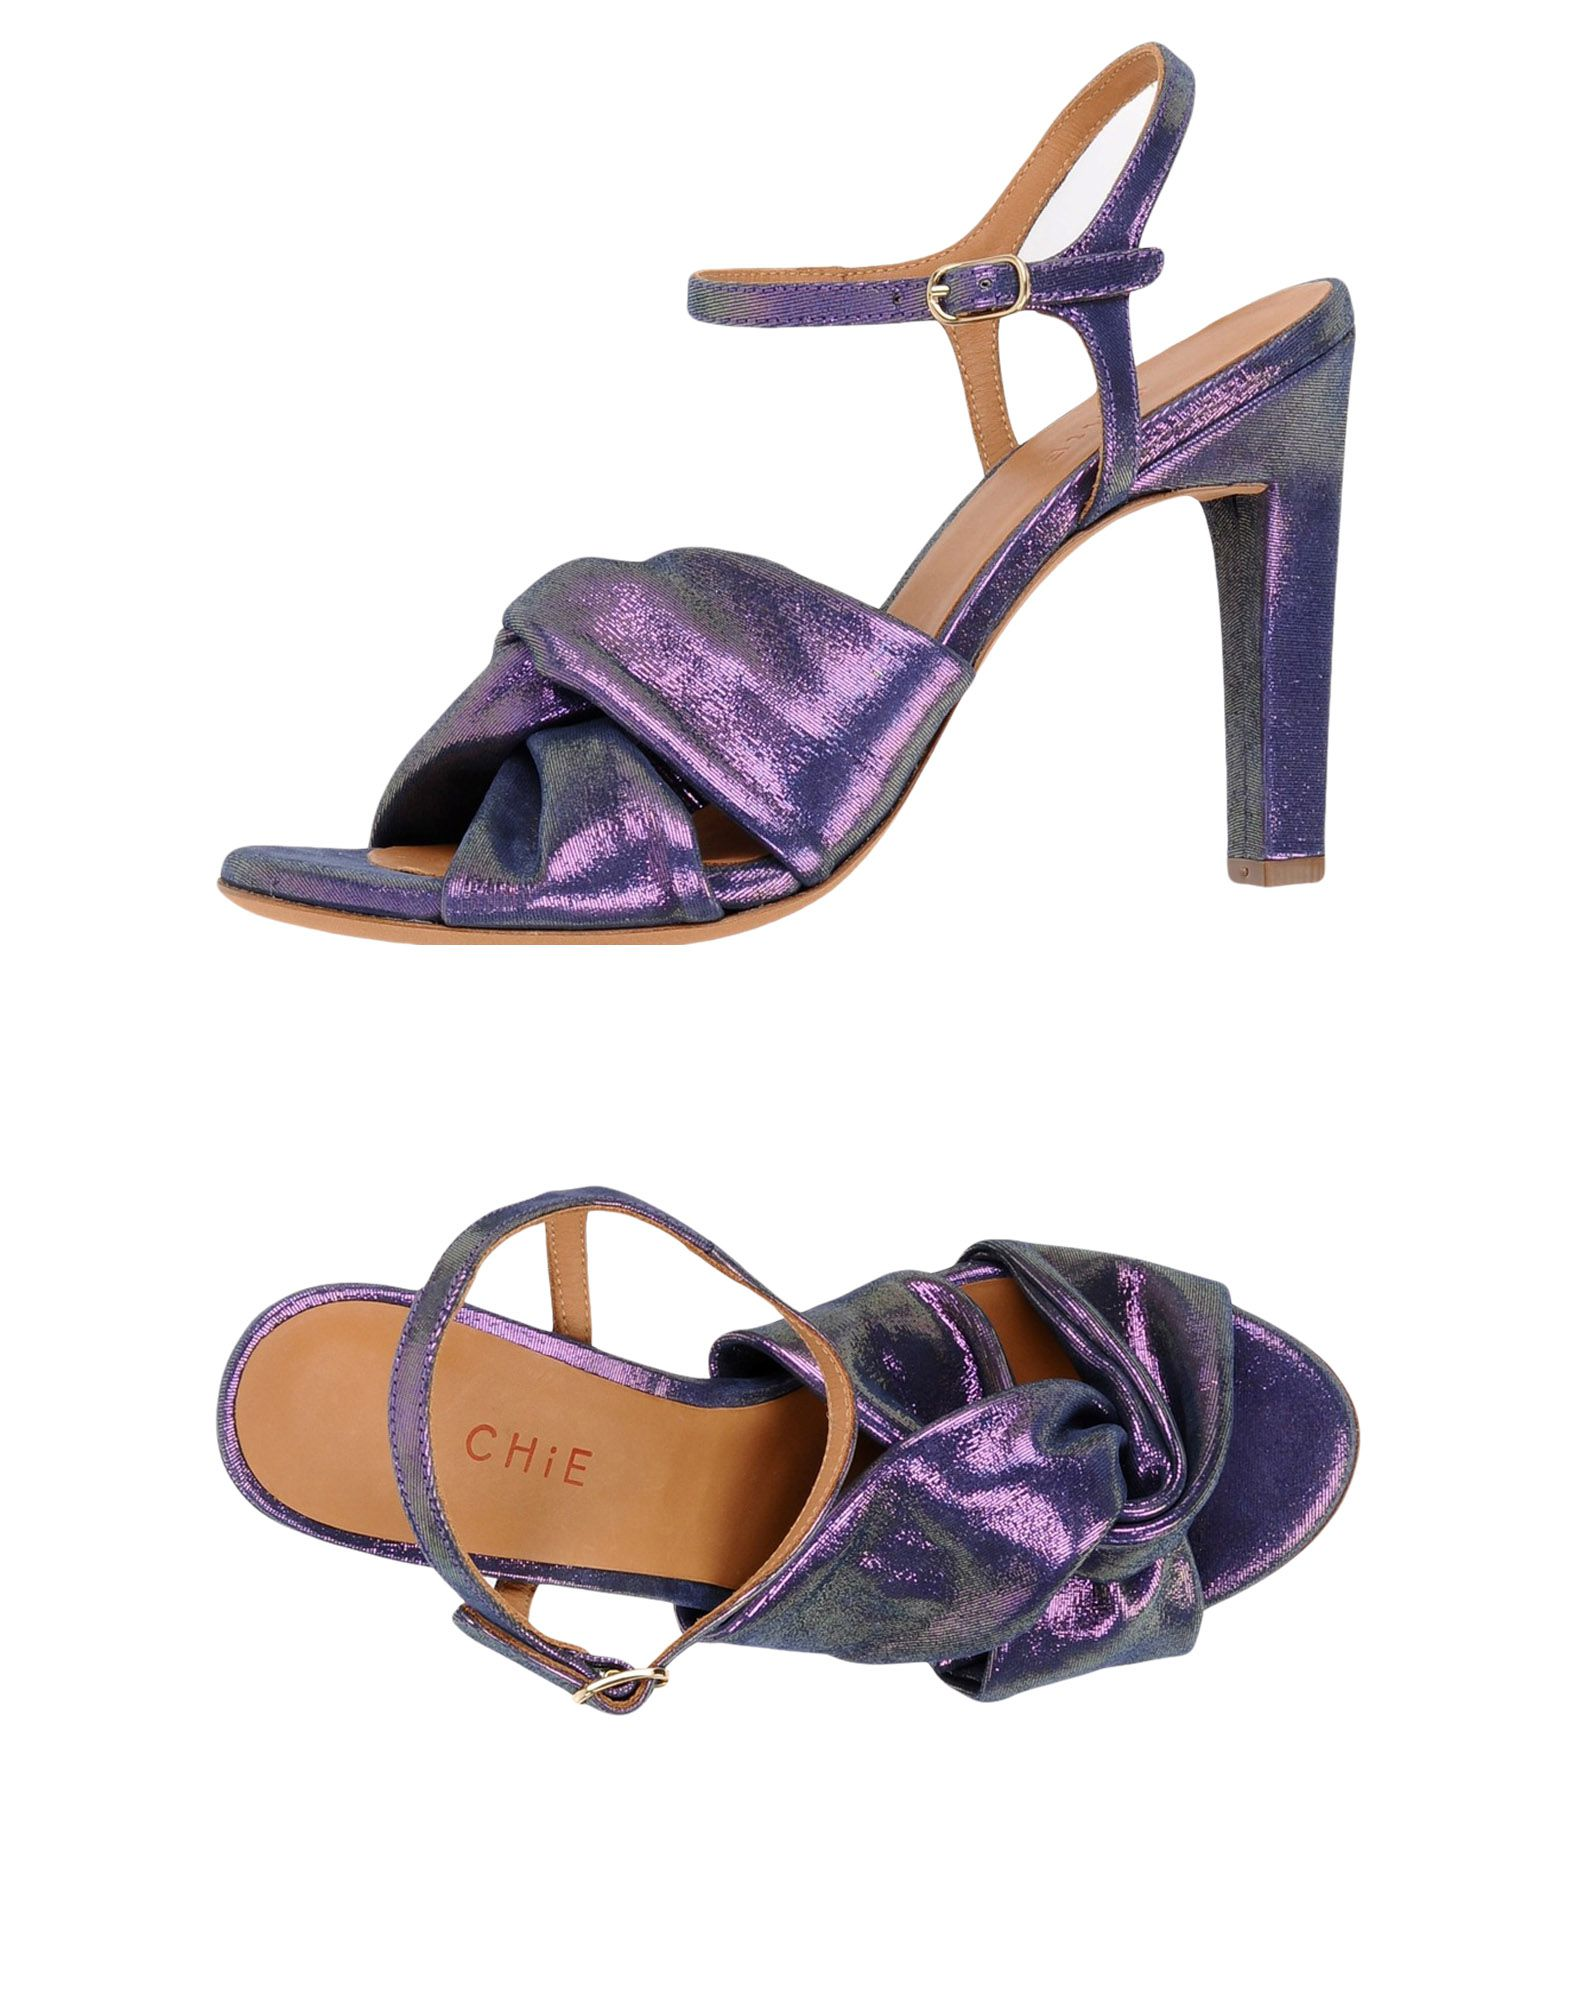 Sandales Chie By Chie Mihara S-Milon32 - Femme - Sandales Chie By Chie Mihara sur